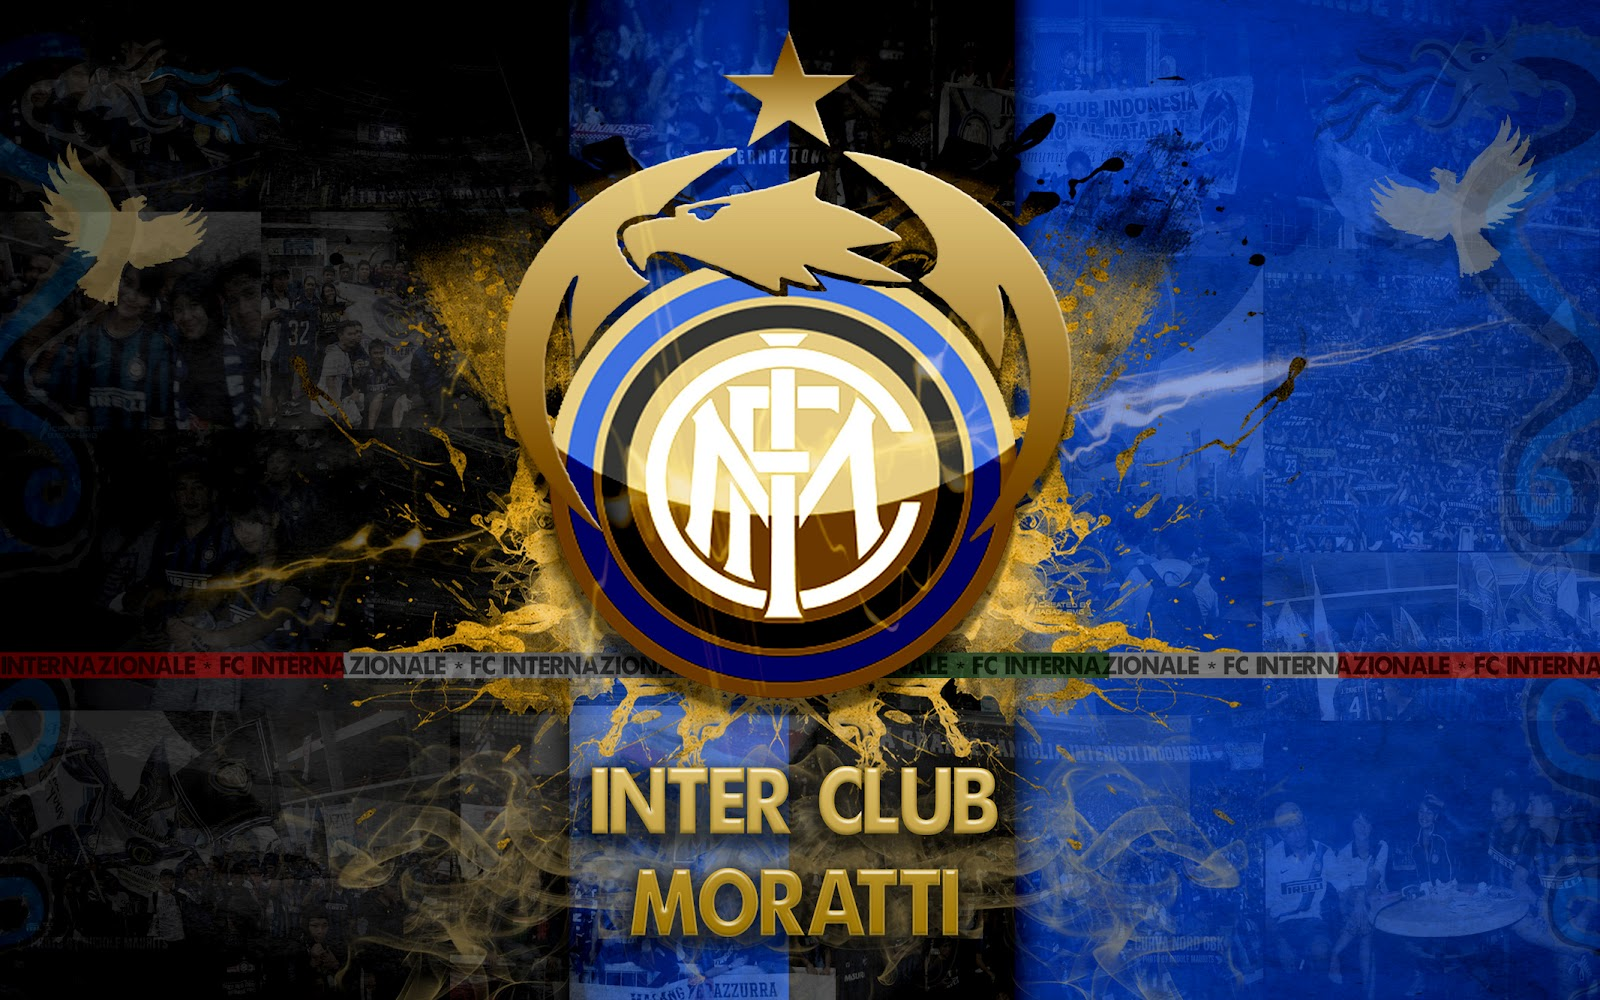 inter milan wallpaper 2012 - photo #11